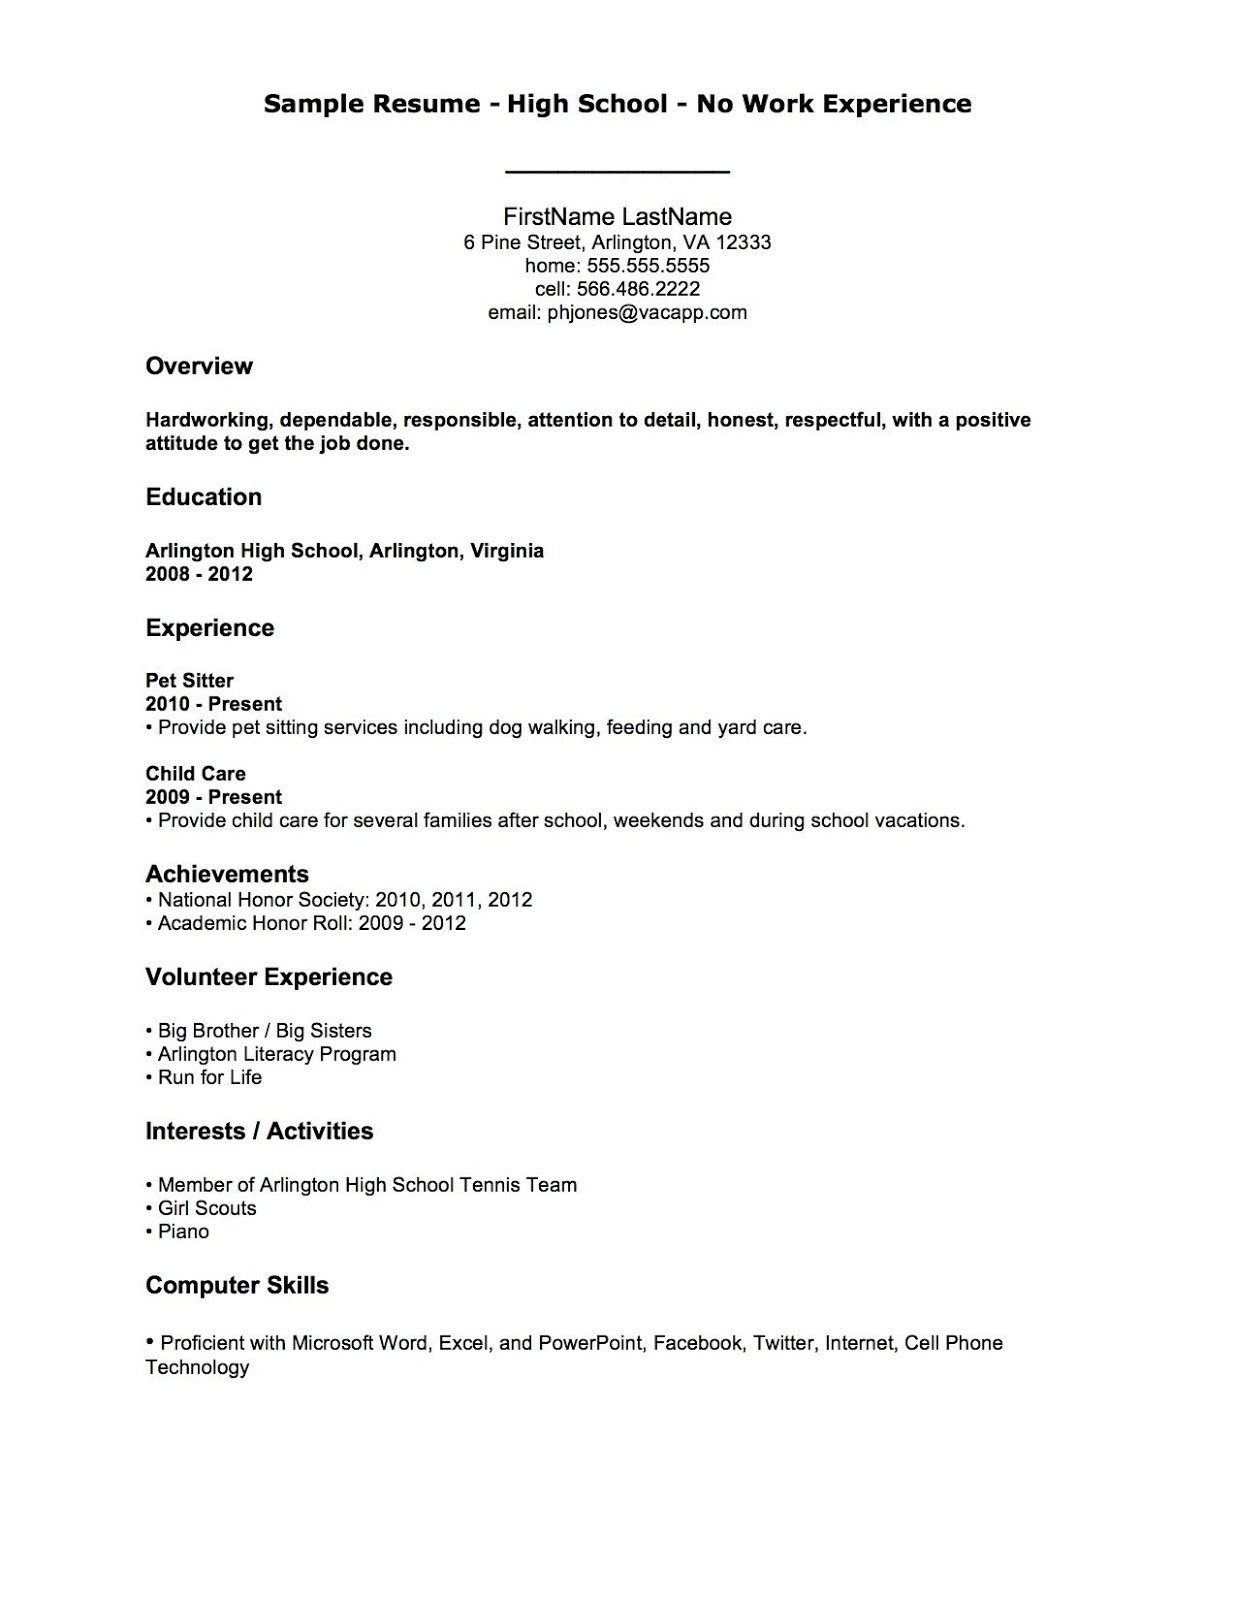 air conditioning s resume hvac technician resume sample resume hvac s sample resume happytom co hvac technician resume sample resume hvac s sample resume happytom co